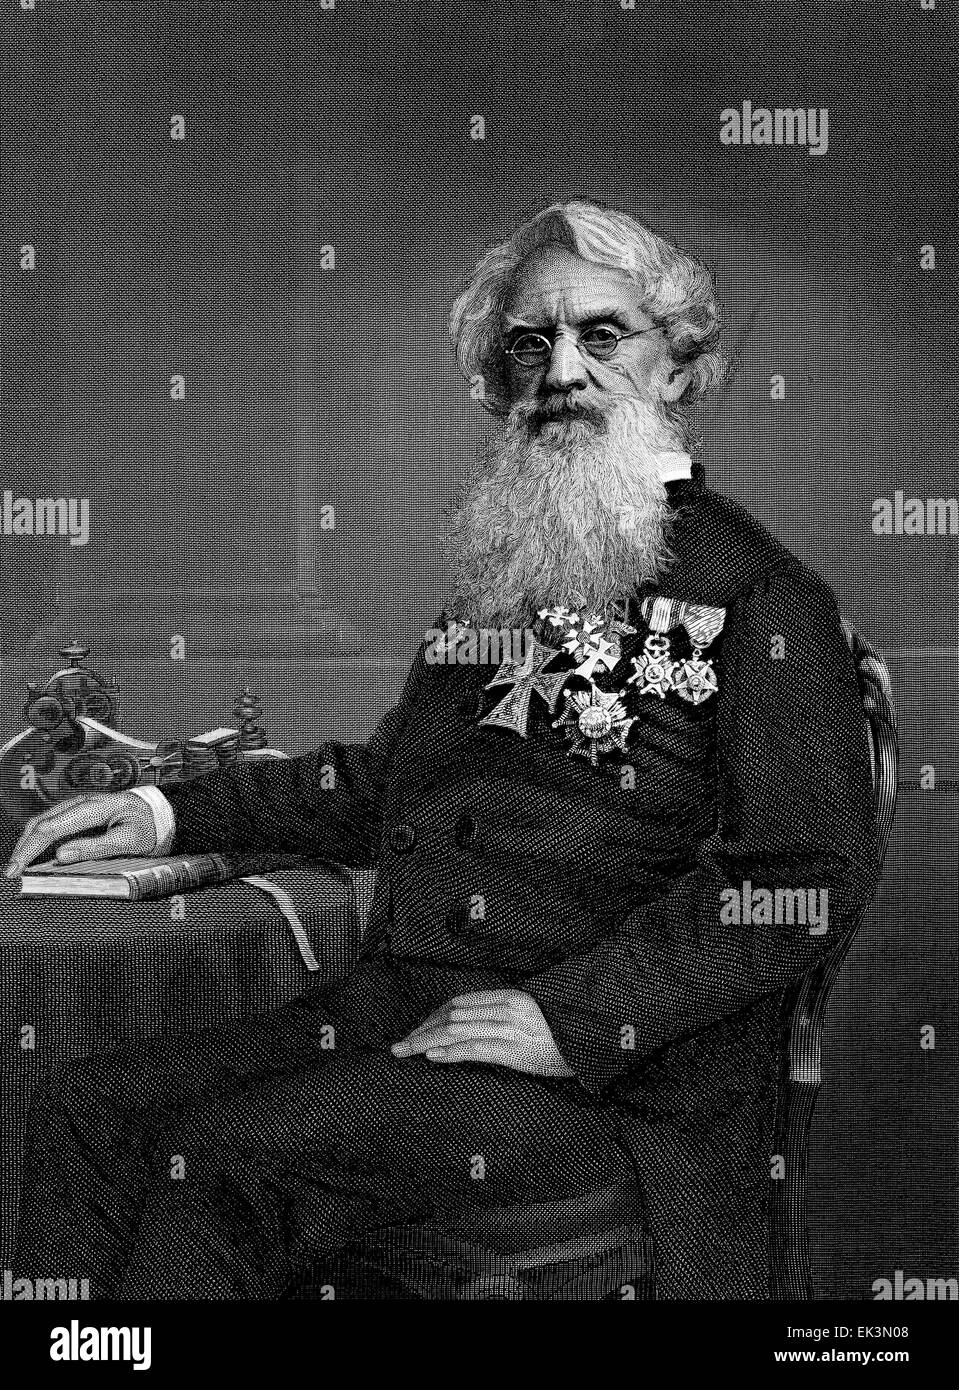 Samuel F.B. Morse, Inventor of the Telegraph, Engraved from Portrait by Alonzo Chappel, circa 1860's - Stock Image